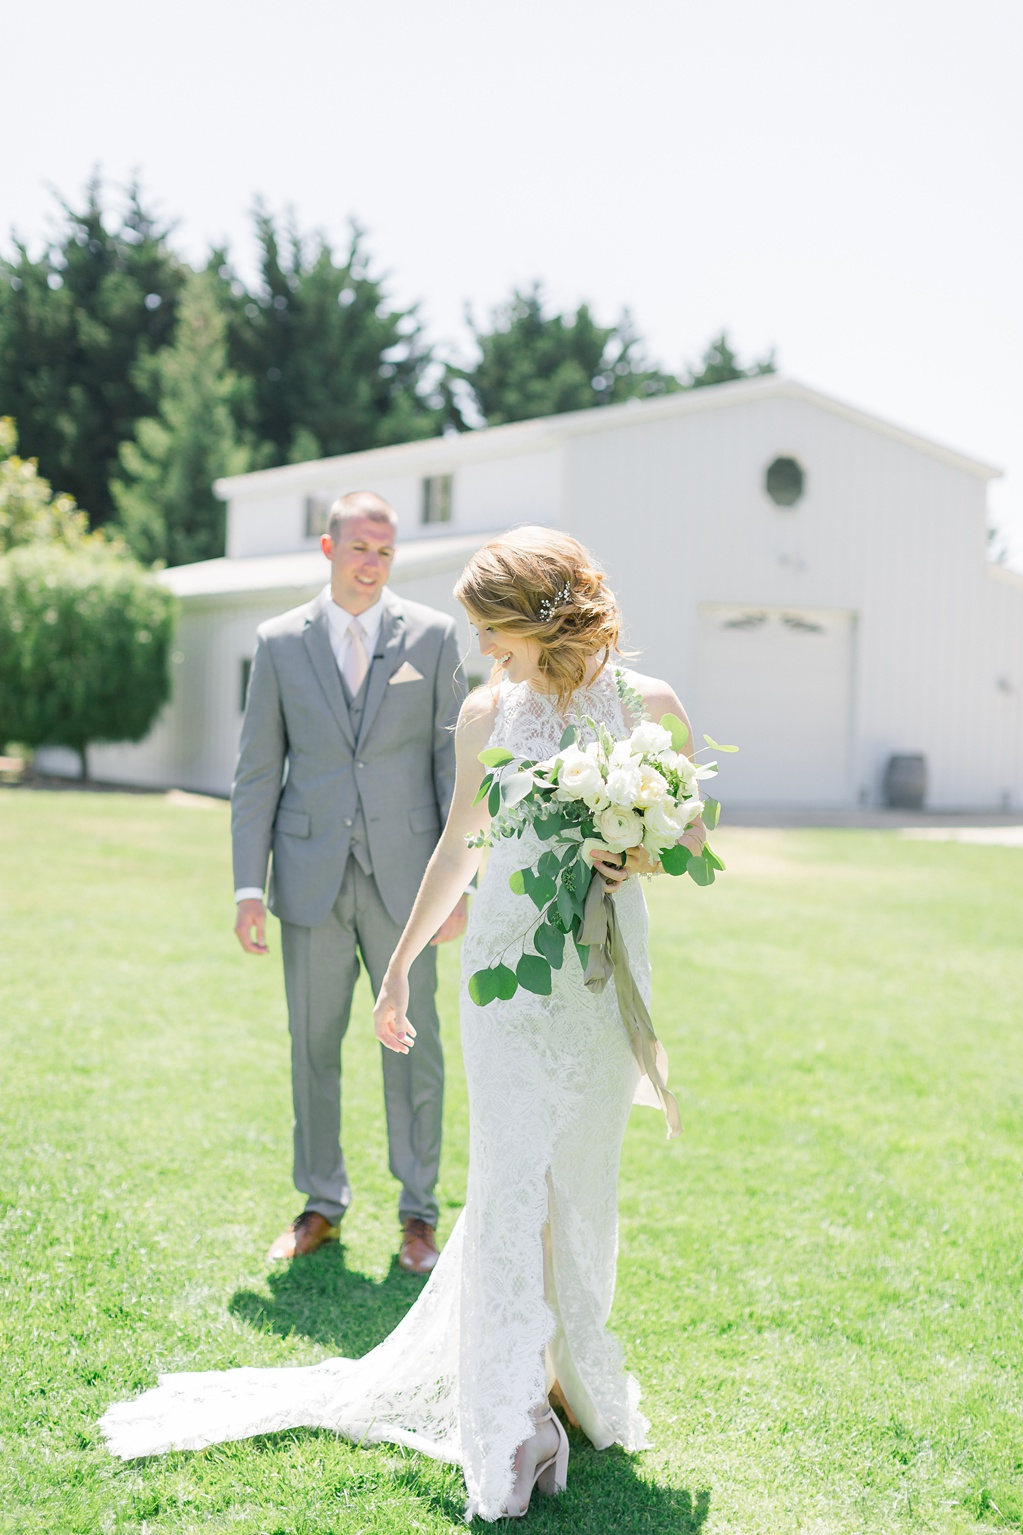 White Barn Inspired Summer Wedding In The Valley of Arroyo Grande, California by Wedding Photographer Madison Ellis (52)